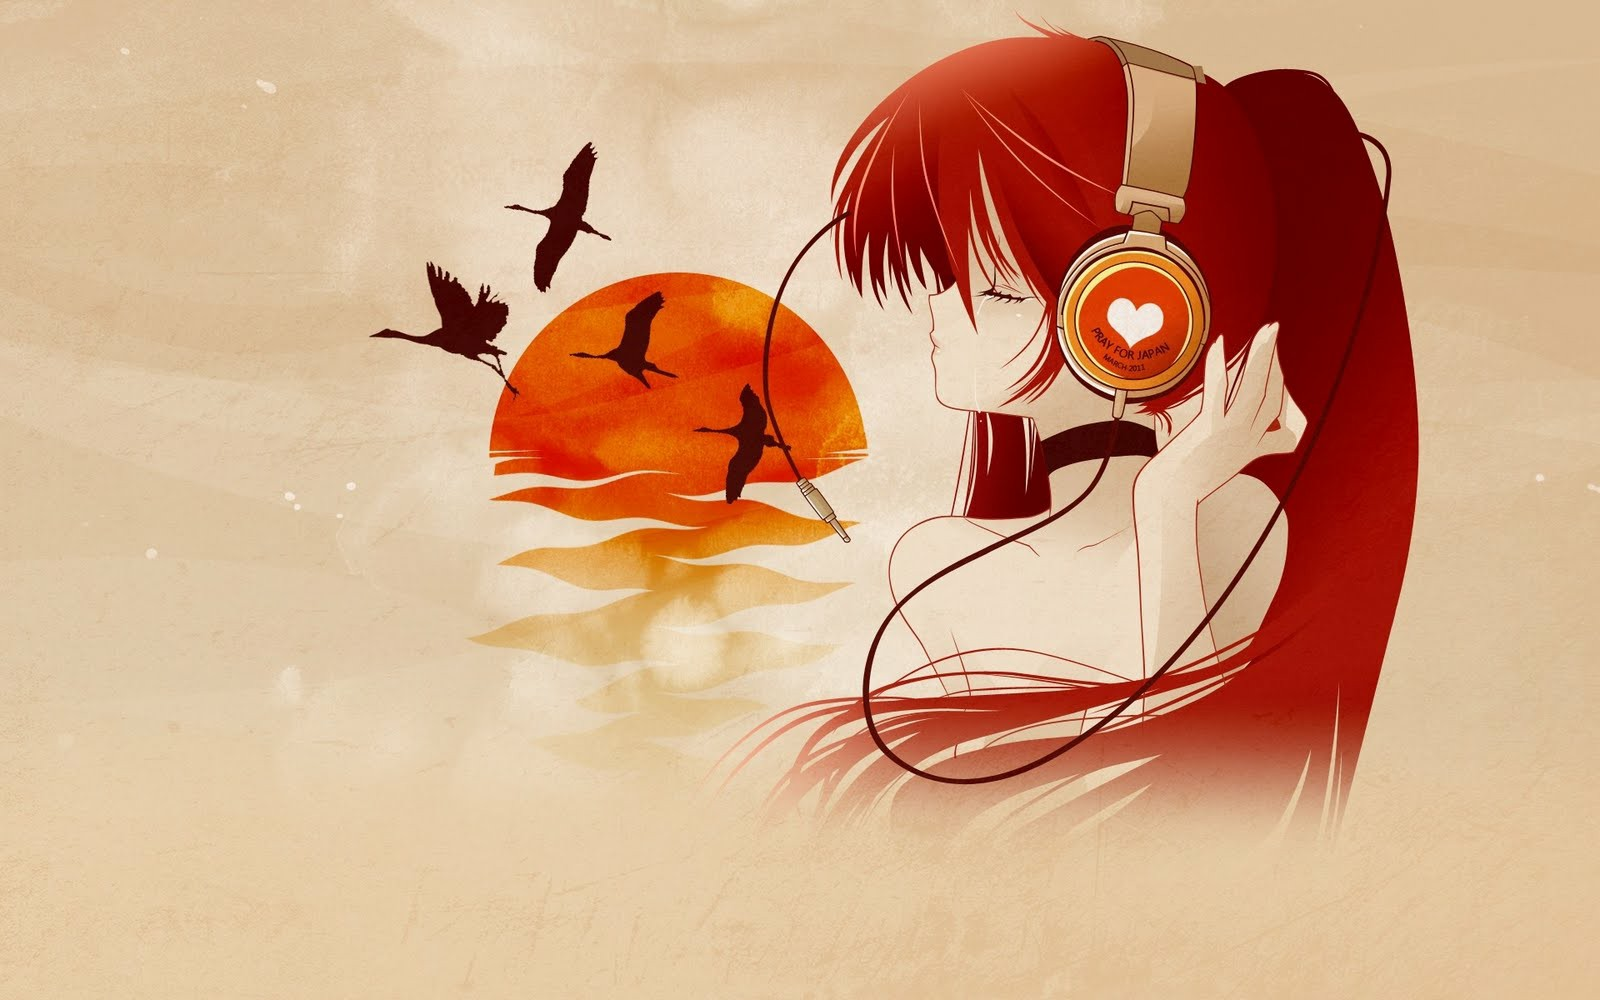 I Love Music wallpaper wallpaper free download 1600x1000